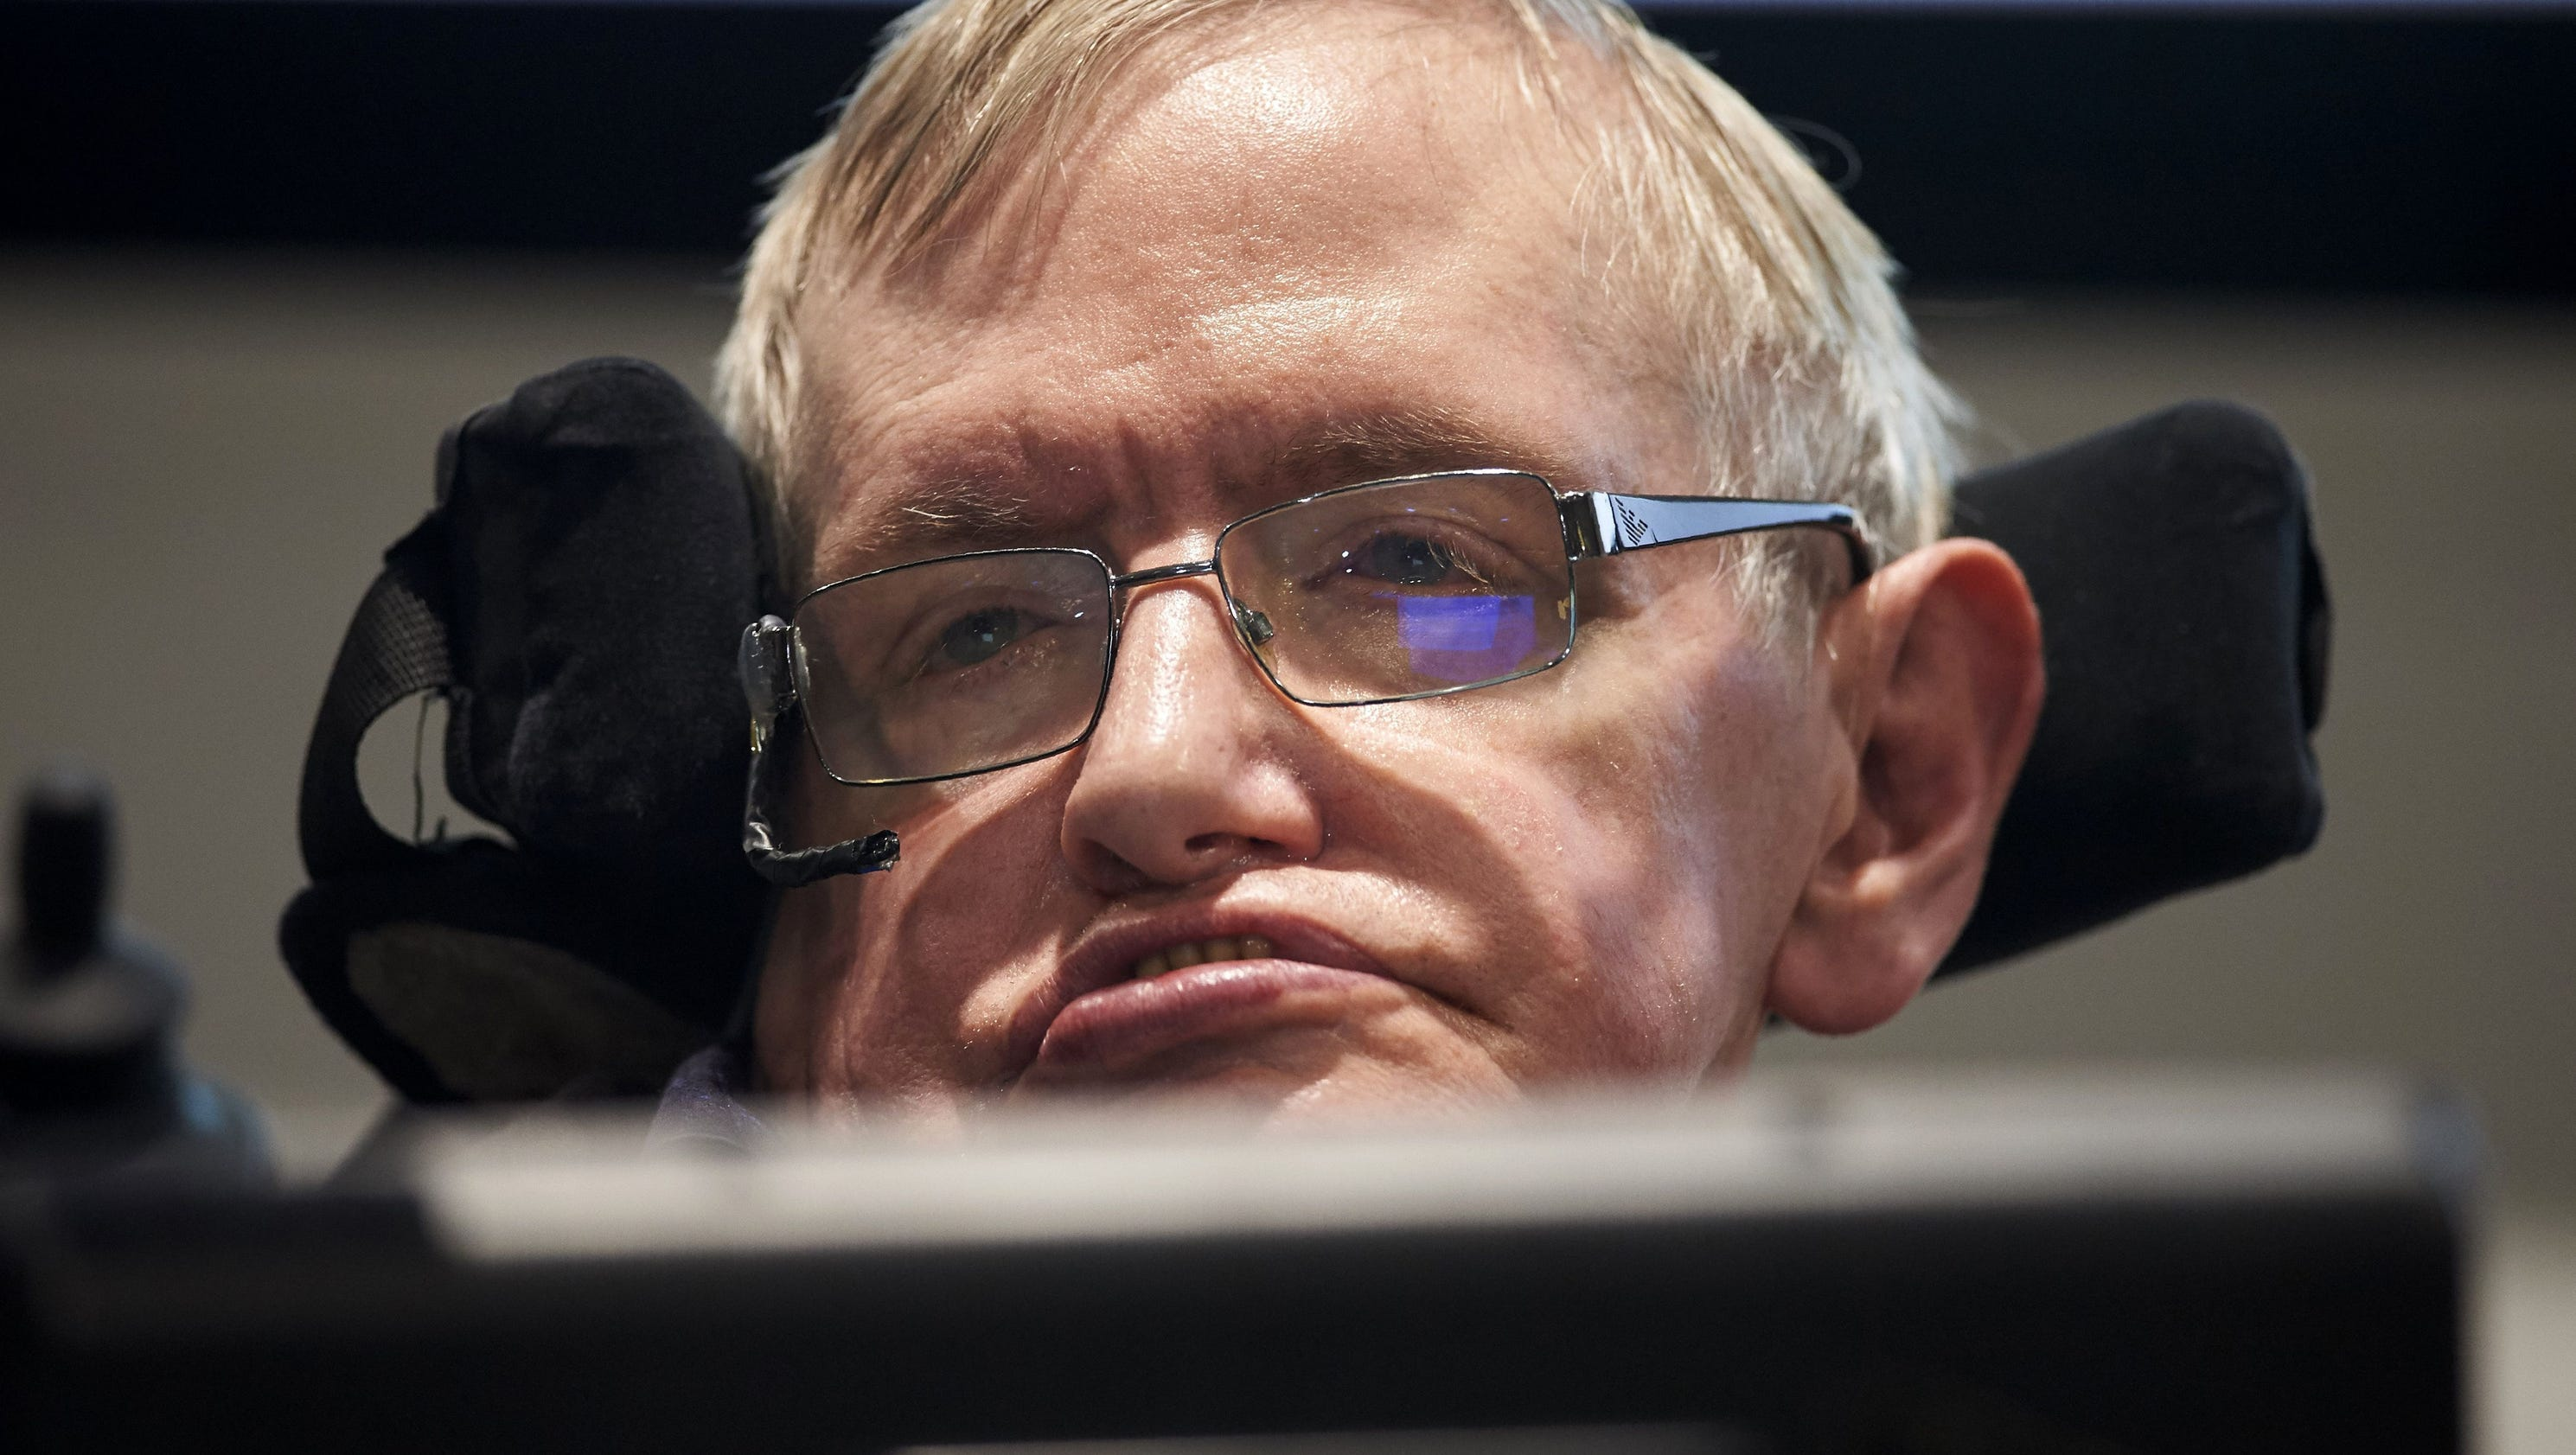 So many people wanted to read Stephen Hawking's PhD thesis, the website crashed